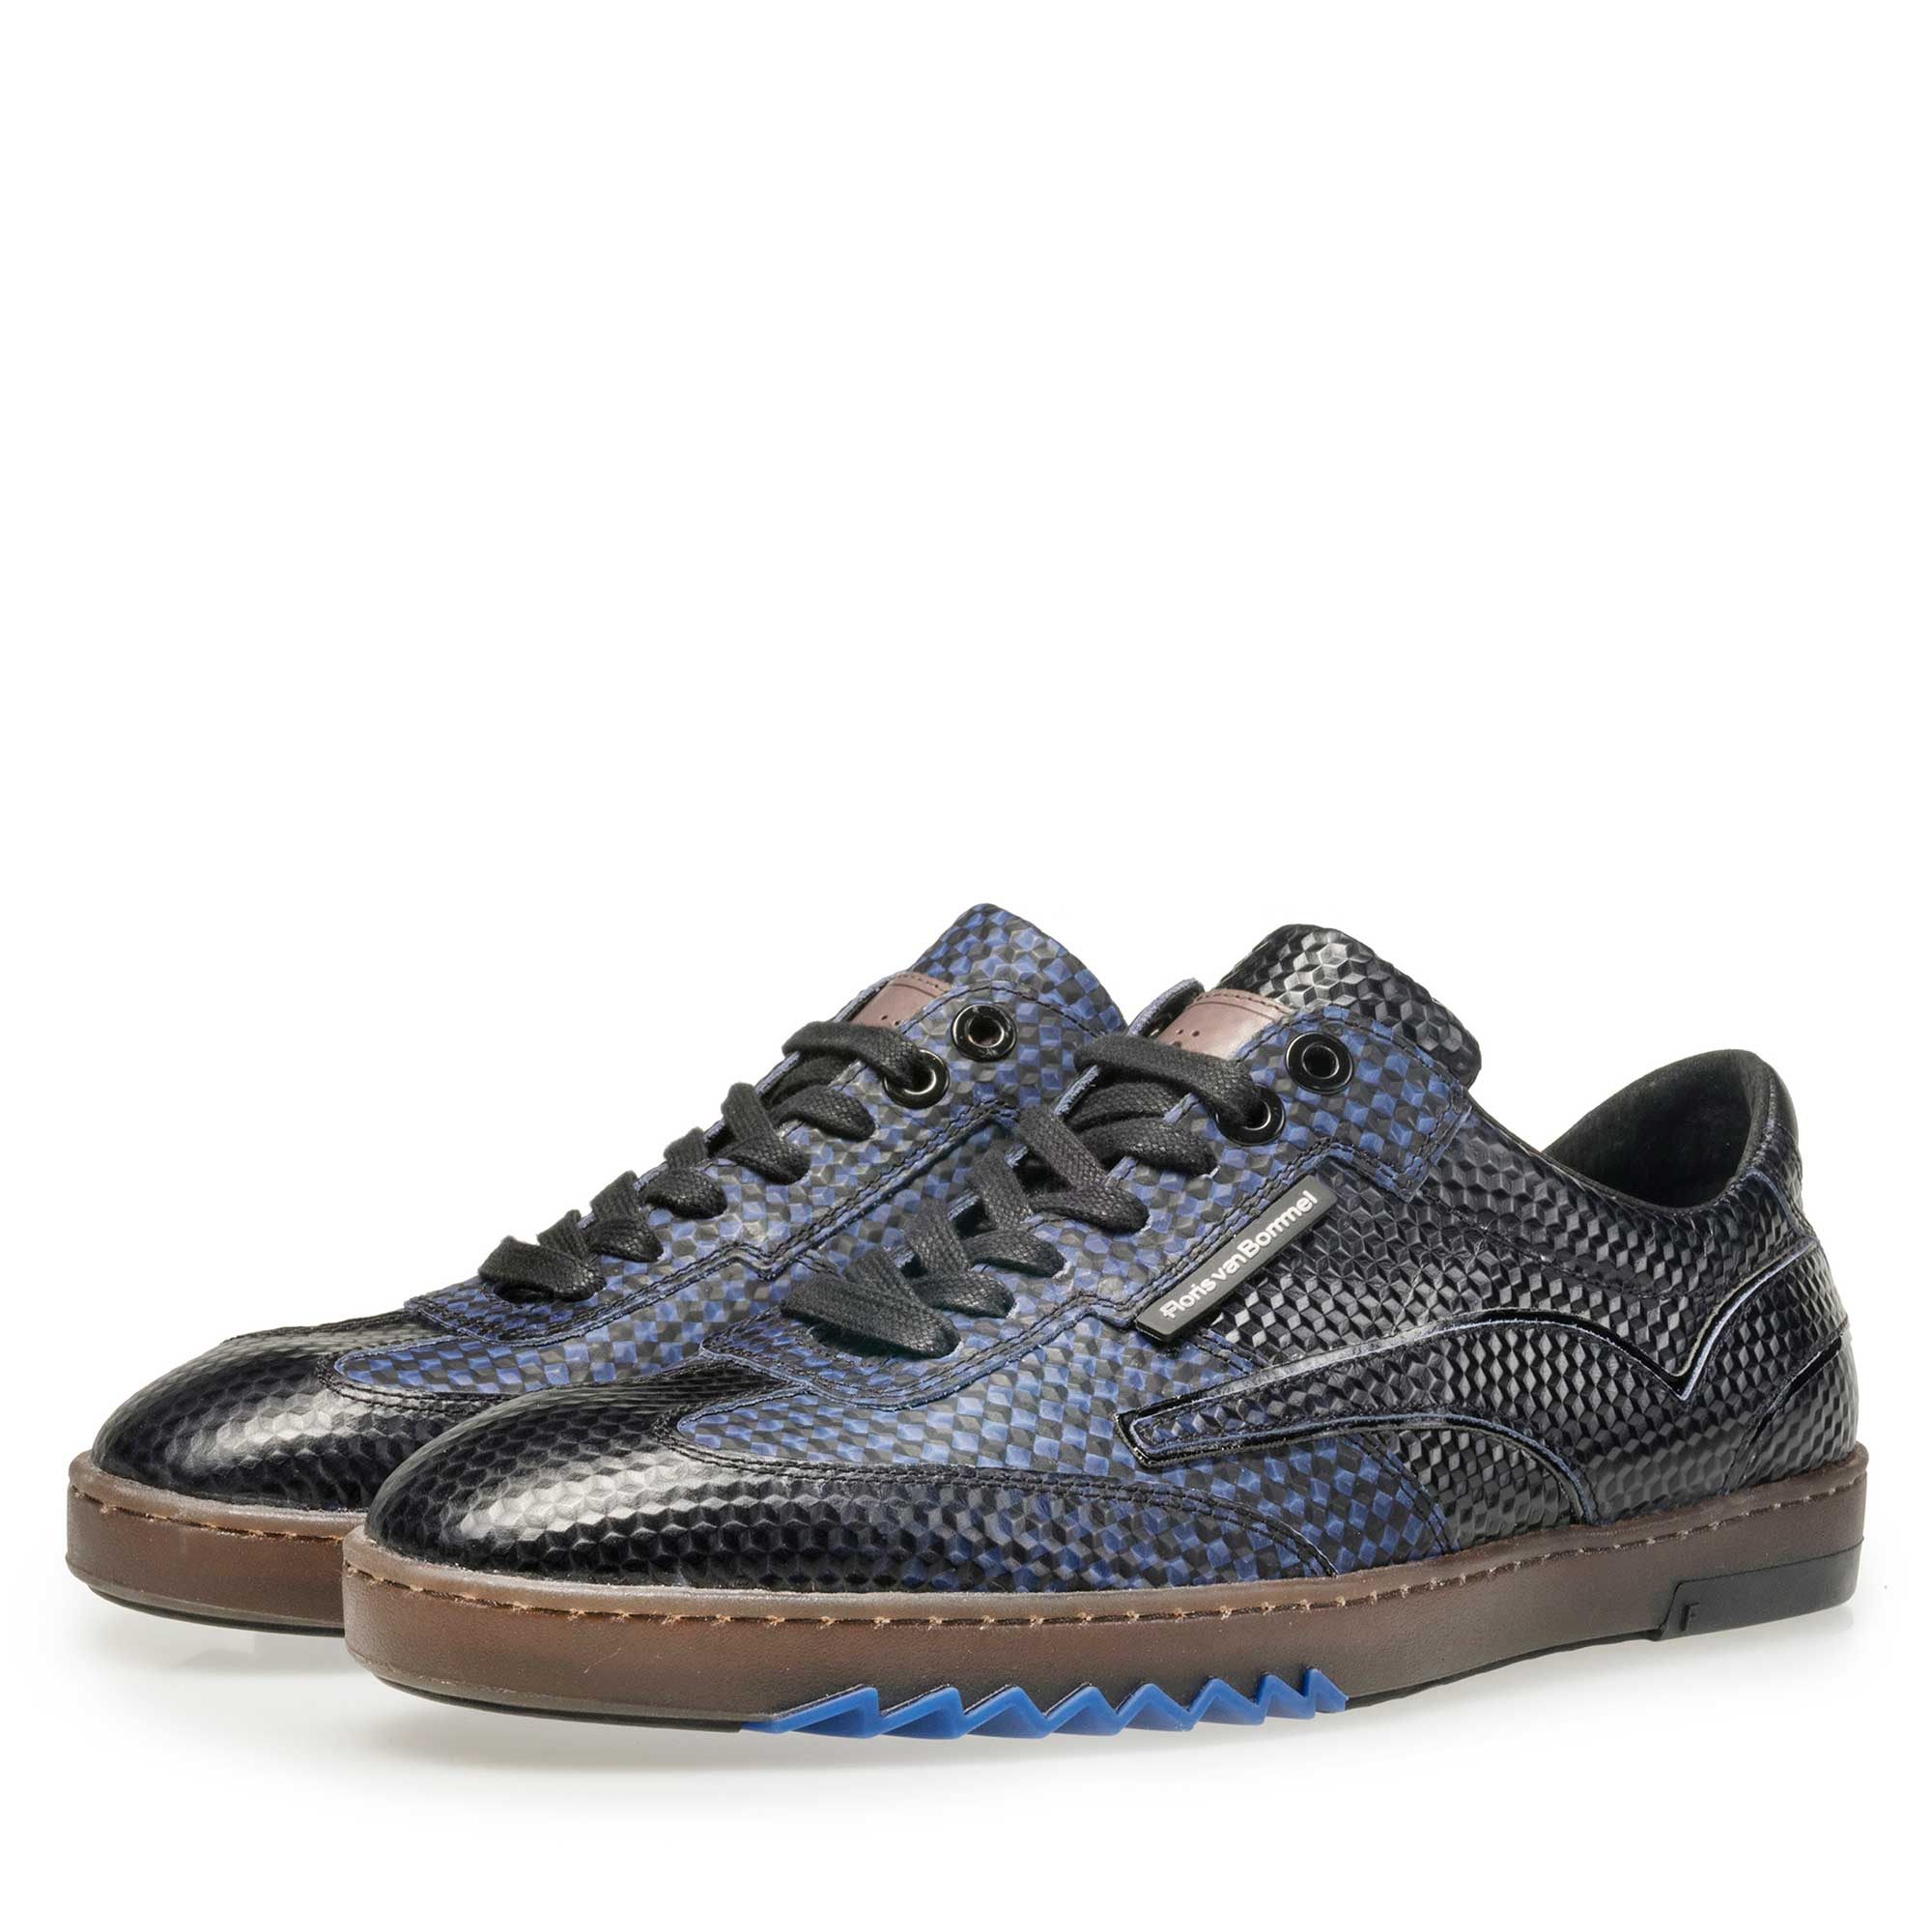 16074/21 - Floris van Bommel men's dark blue sneaker finished with a black print